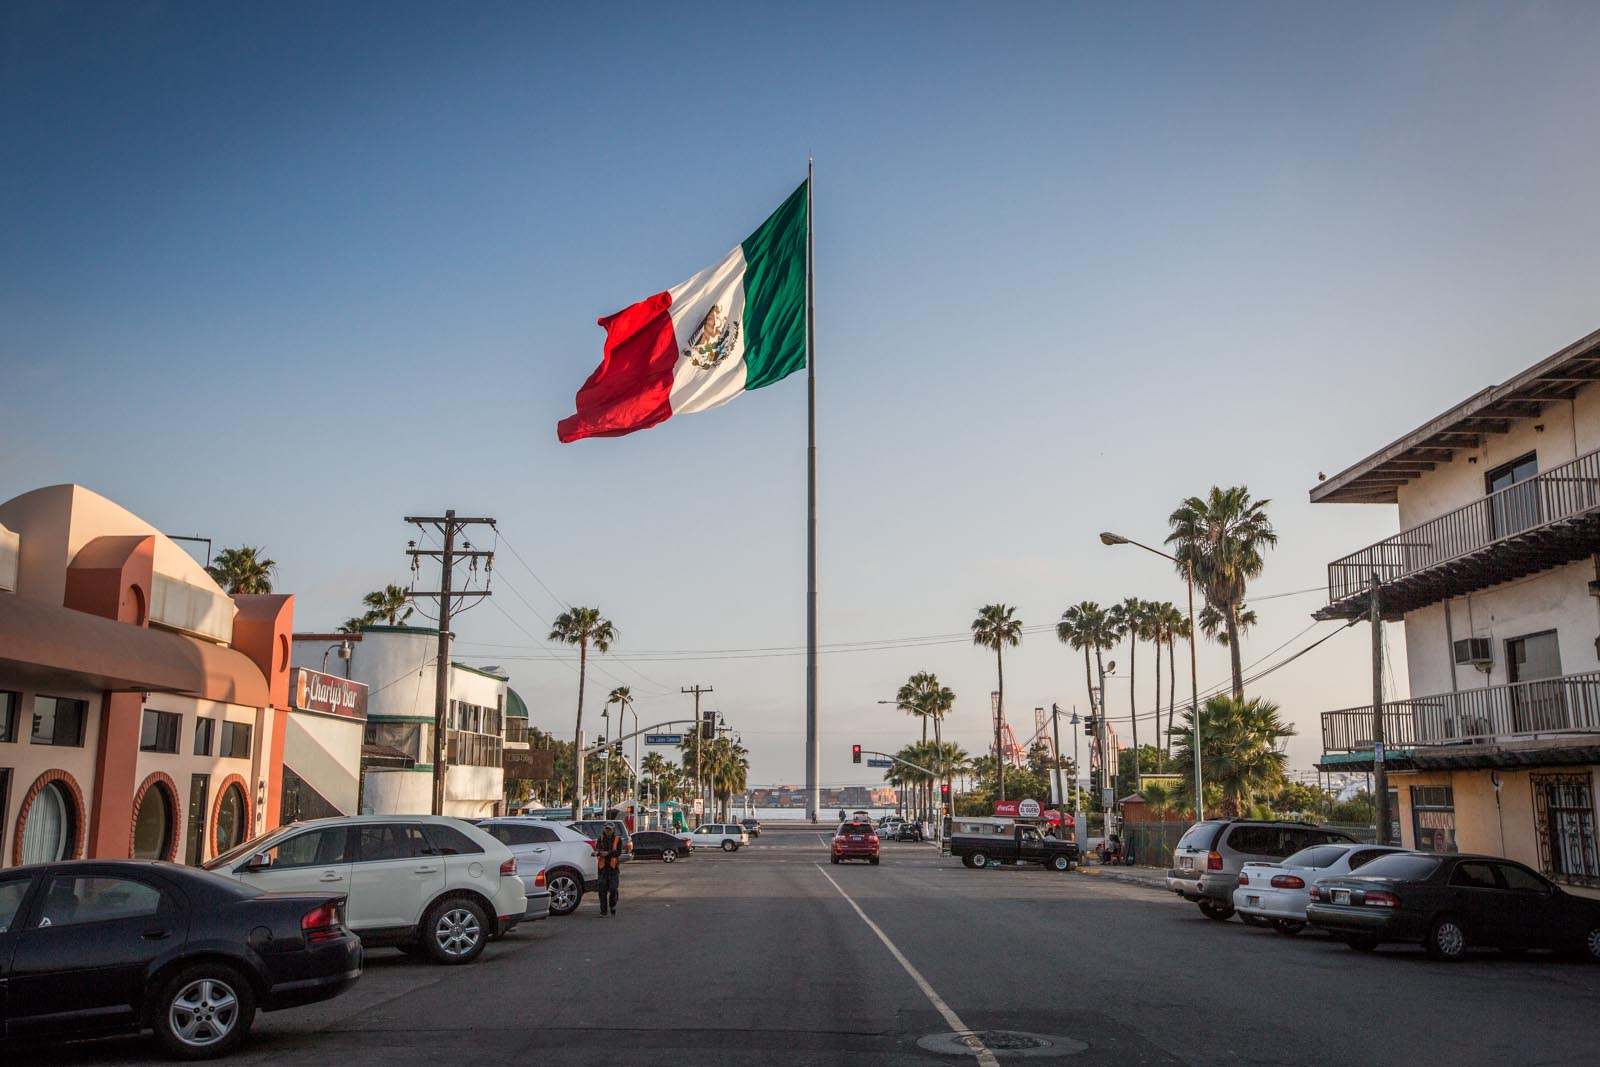 Here is a giant flag in downtown Ensenada -- just in case the tourists fresh off the boat forgot they've arrived in Mexico.